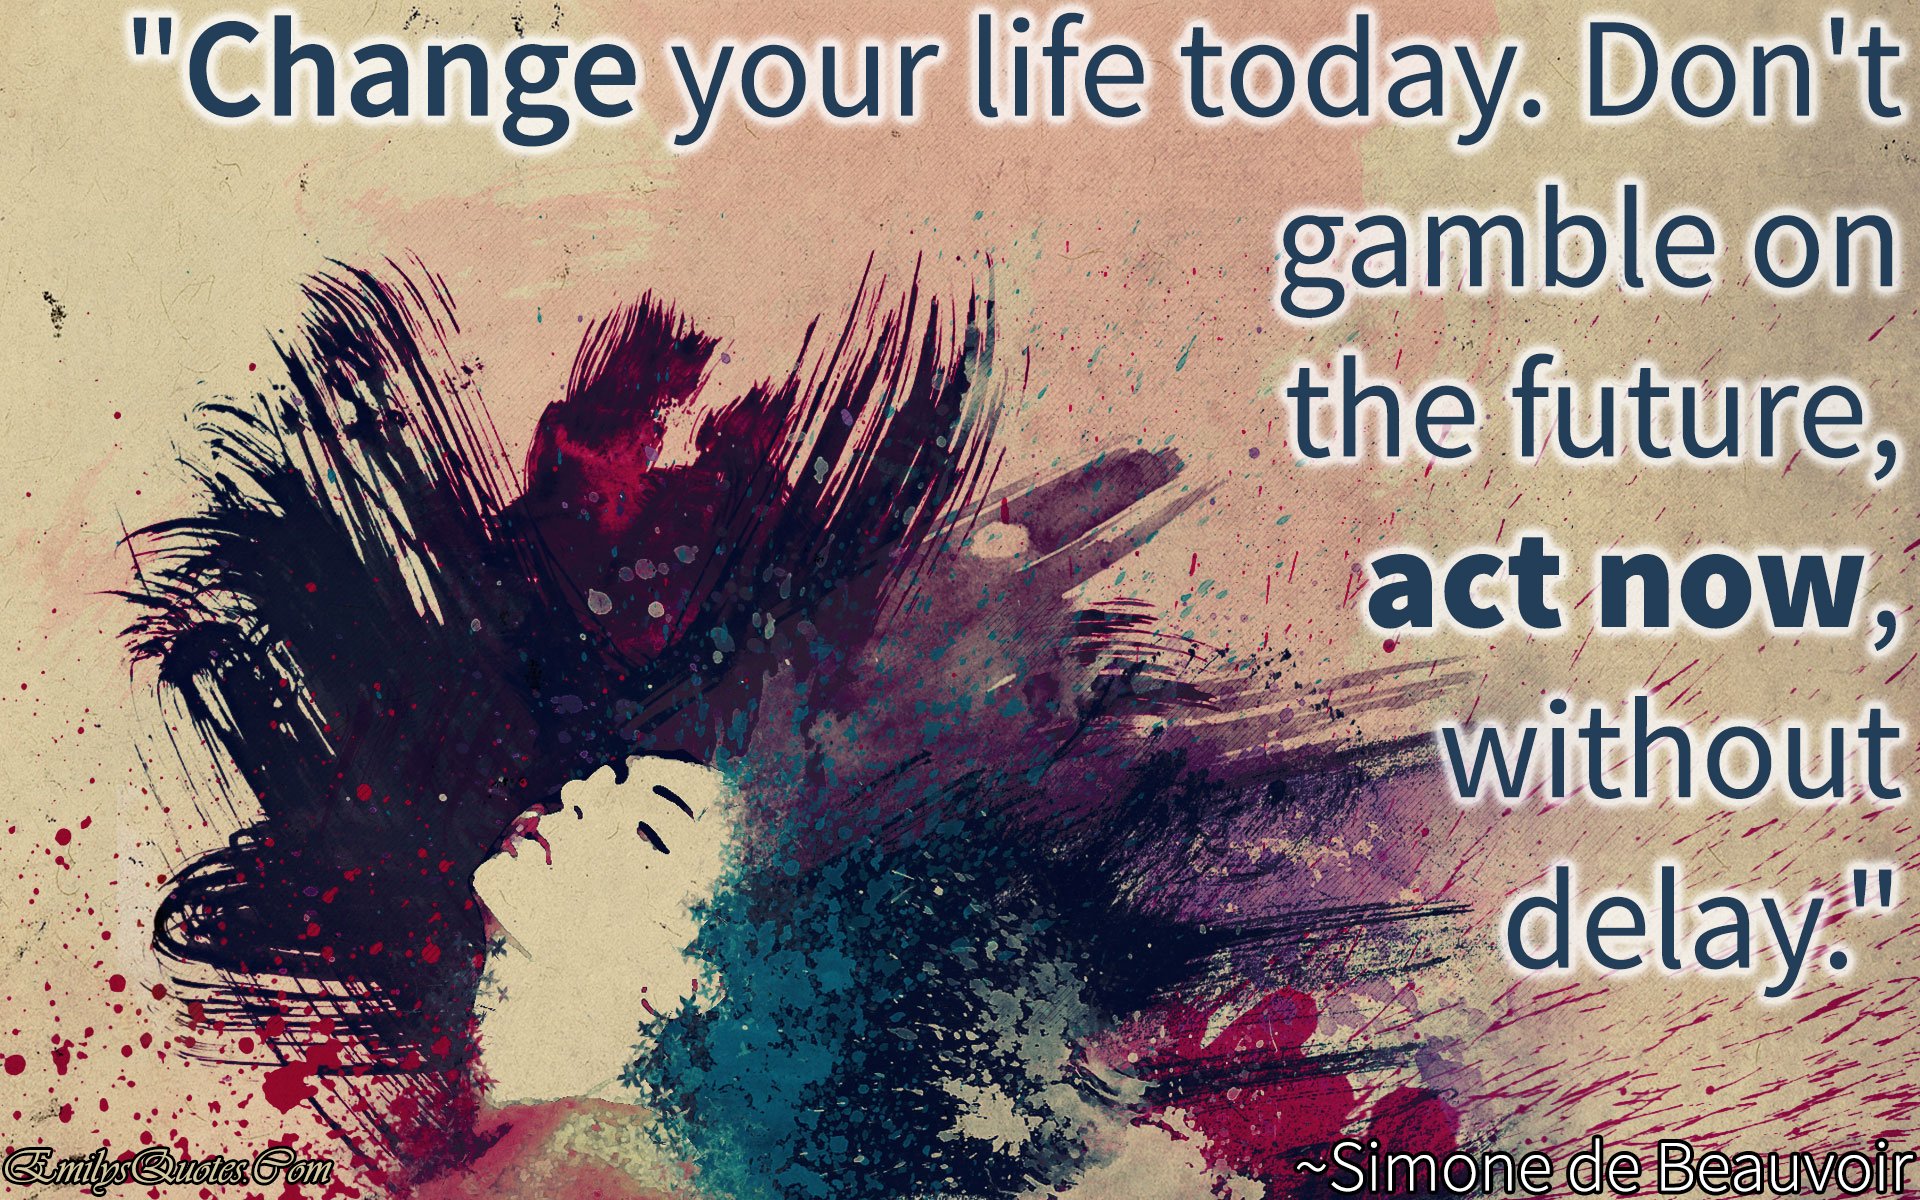 Quotes About Change In Life Change Your Life Todaydon't Gamble On The Future Act Now